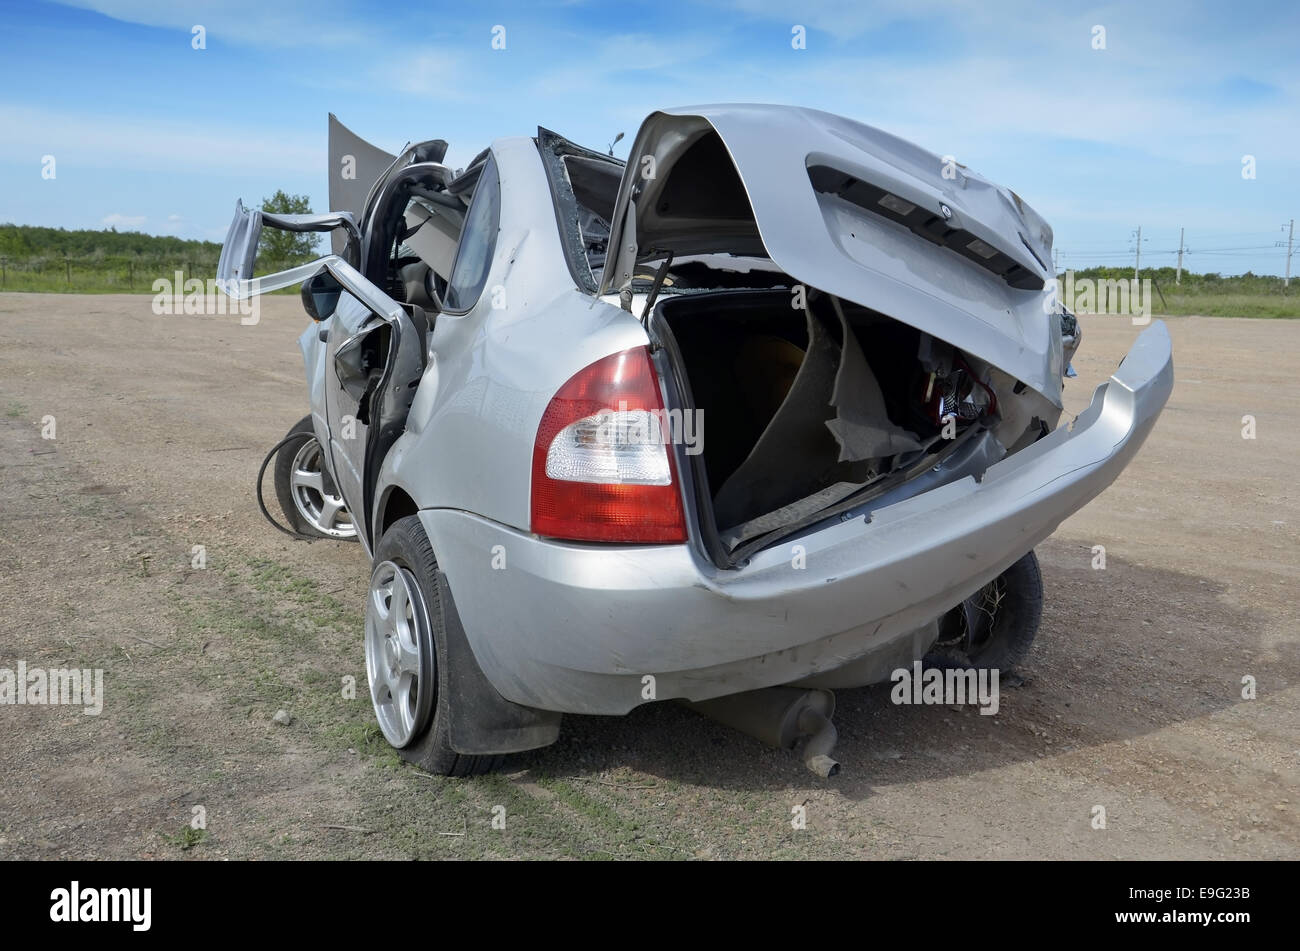 Crashed car - Stock Image